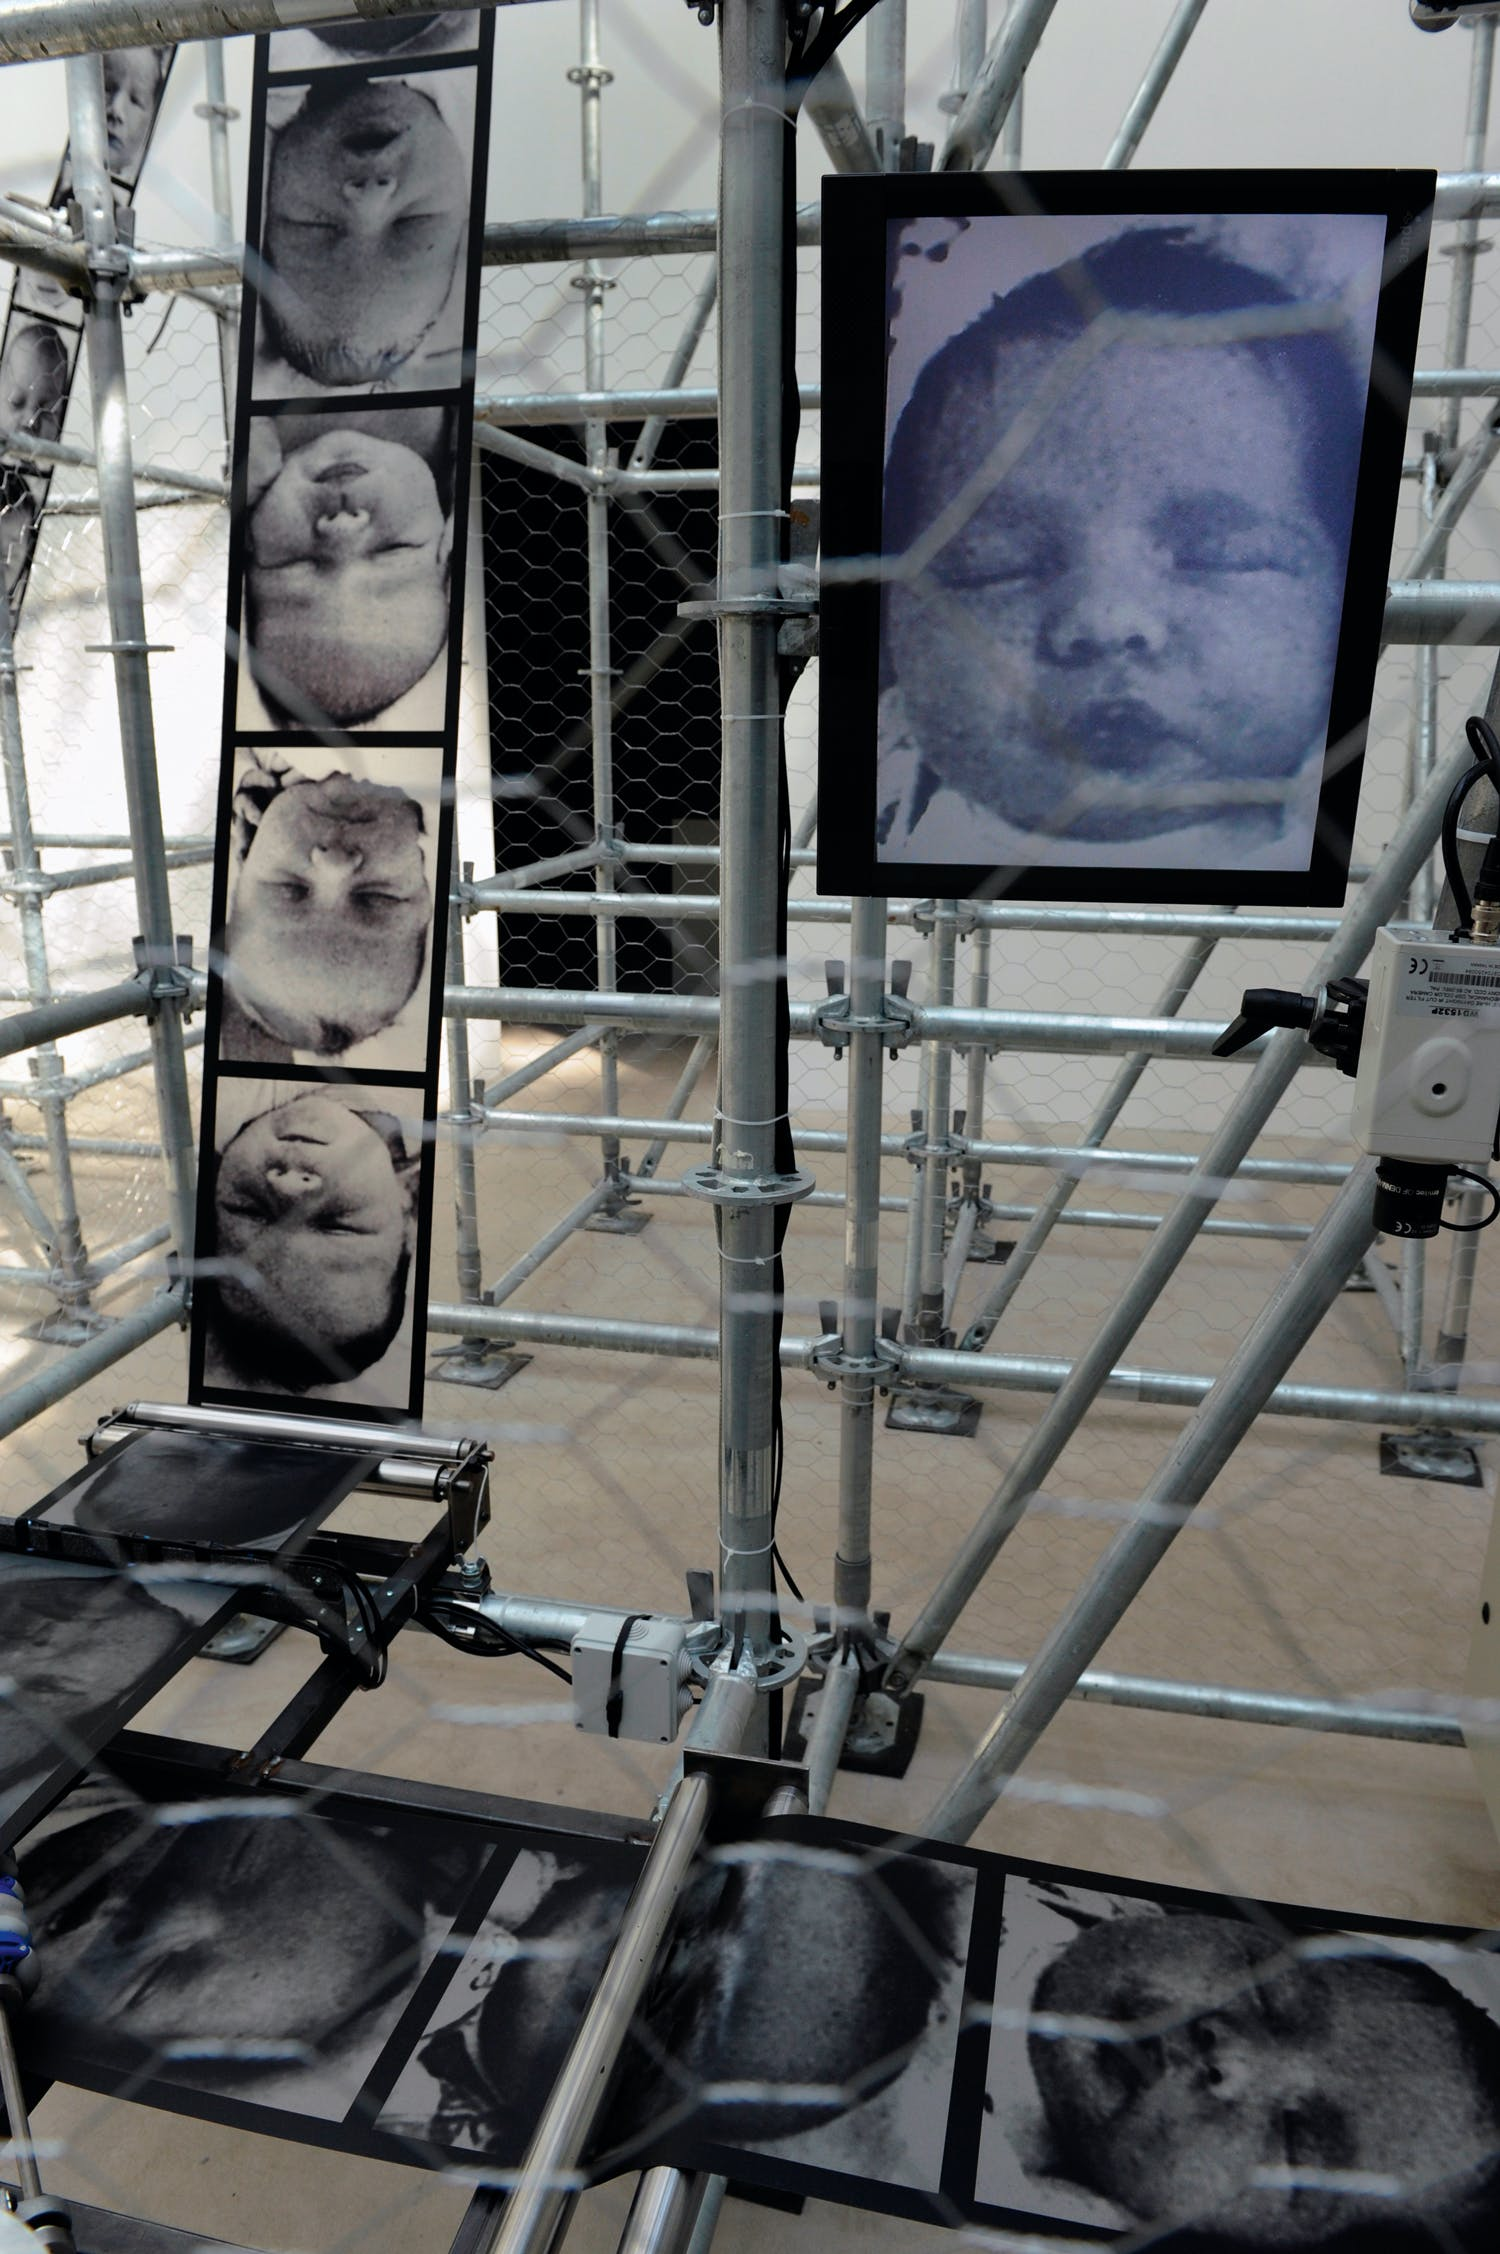 Wheel of Fortune, (2011), Christian Boltanski, photograph of its installation in the French Pavilion at the Venice Biennale, photo: Didier Plowy; courtesy the artist and Marian Goodman Gallery New York, Paris & London; © Christian Boltanski